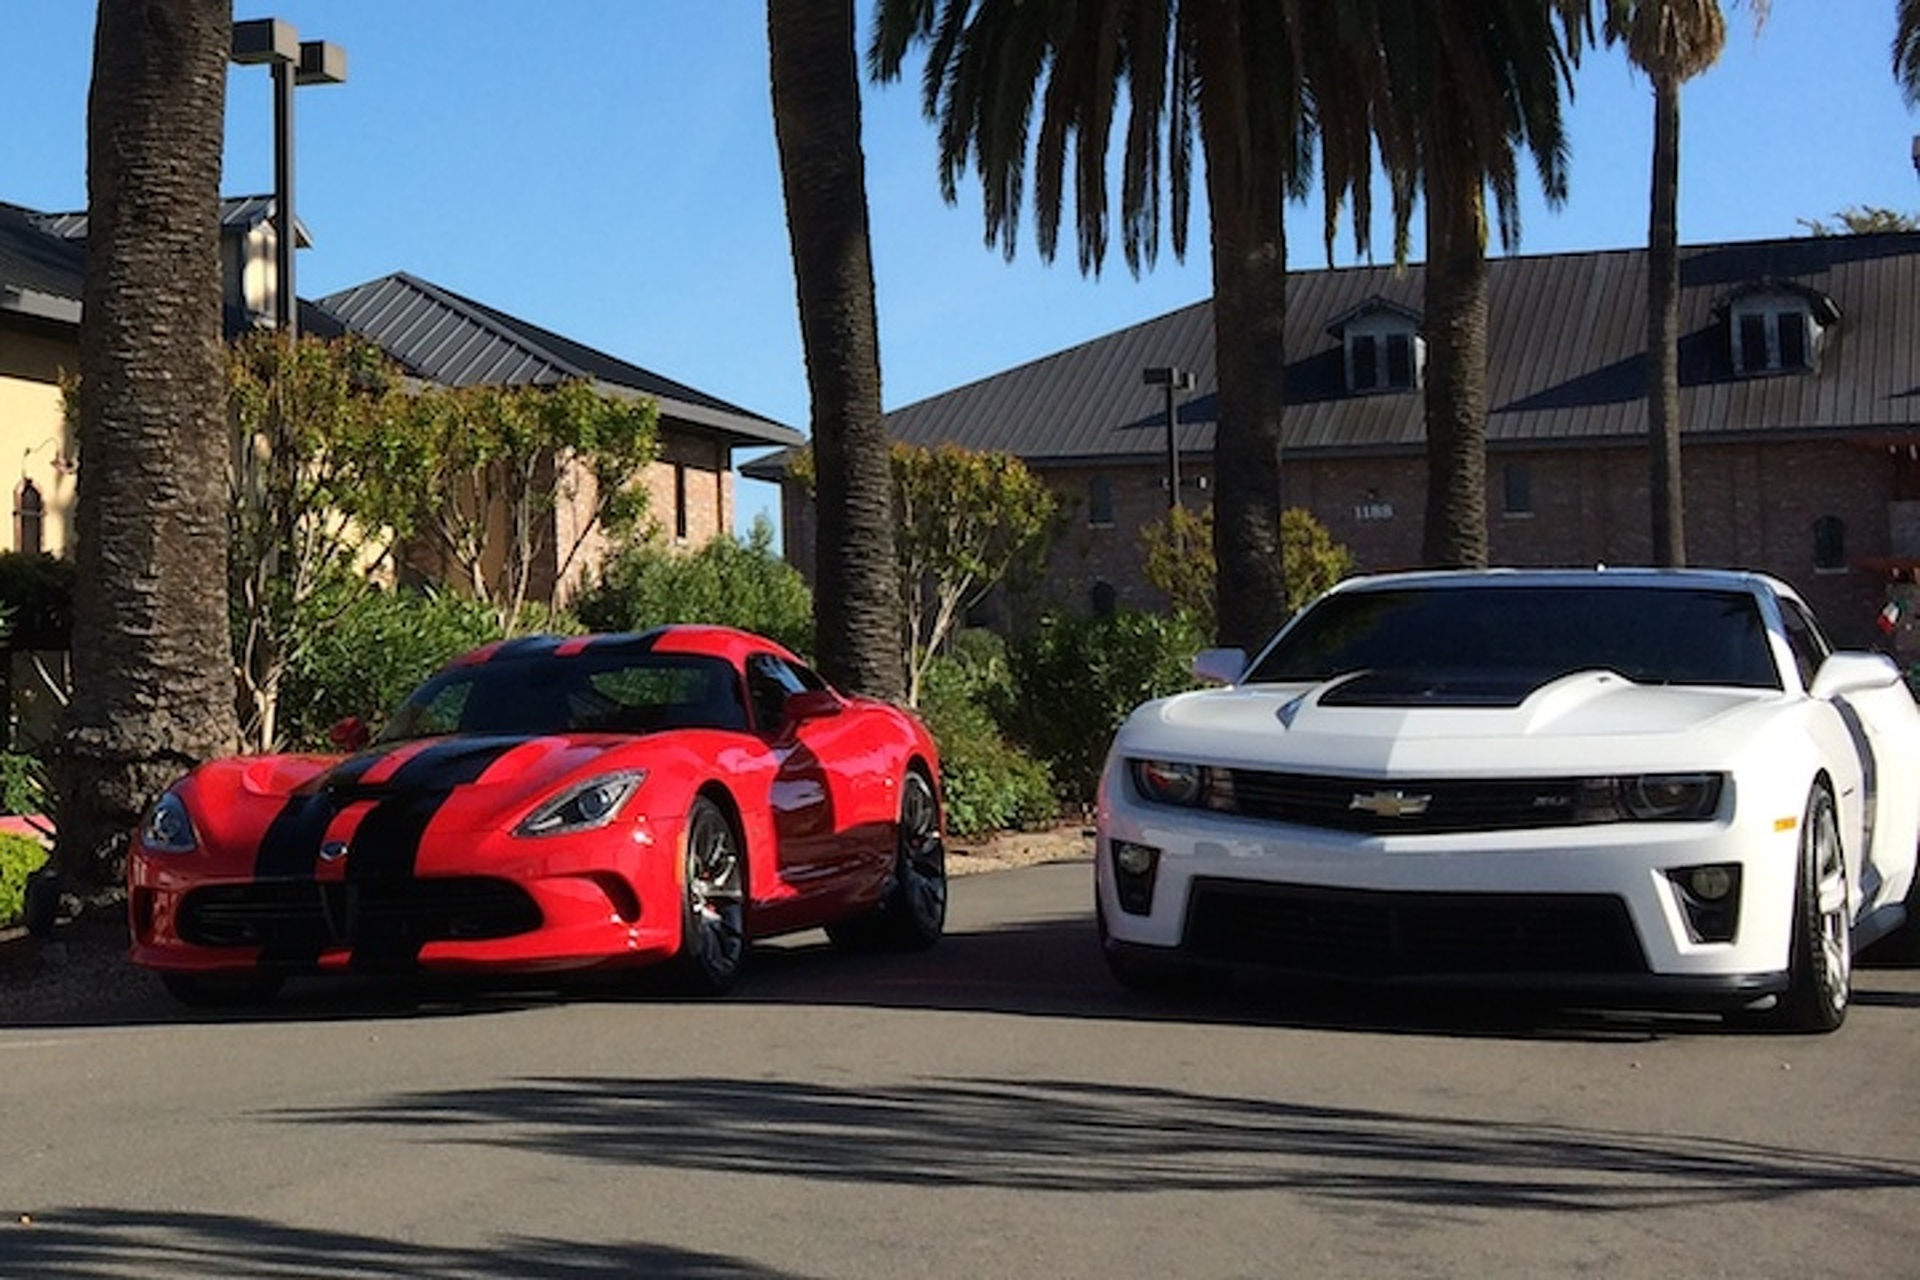 Your Ride: DJ RobSleezy's Jaw-Dropping Chrysler and Chevy Collection